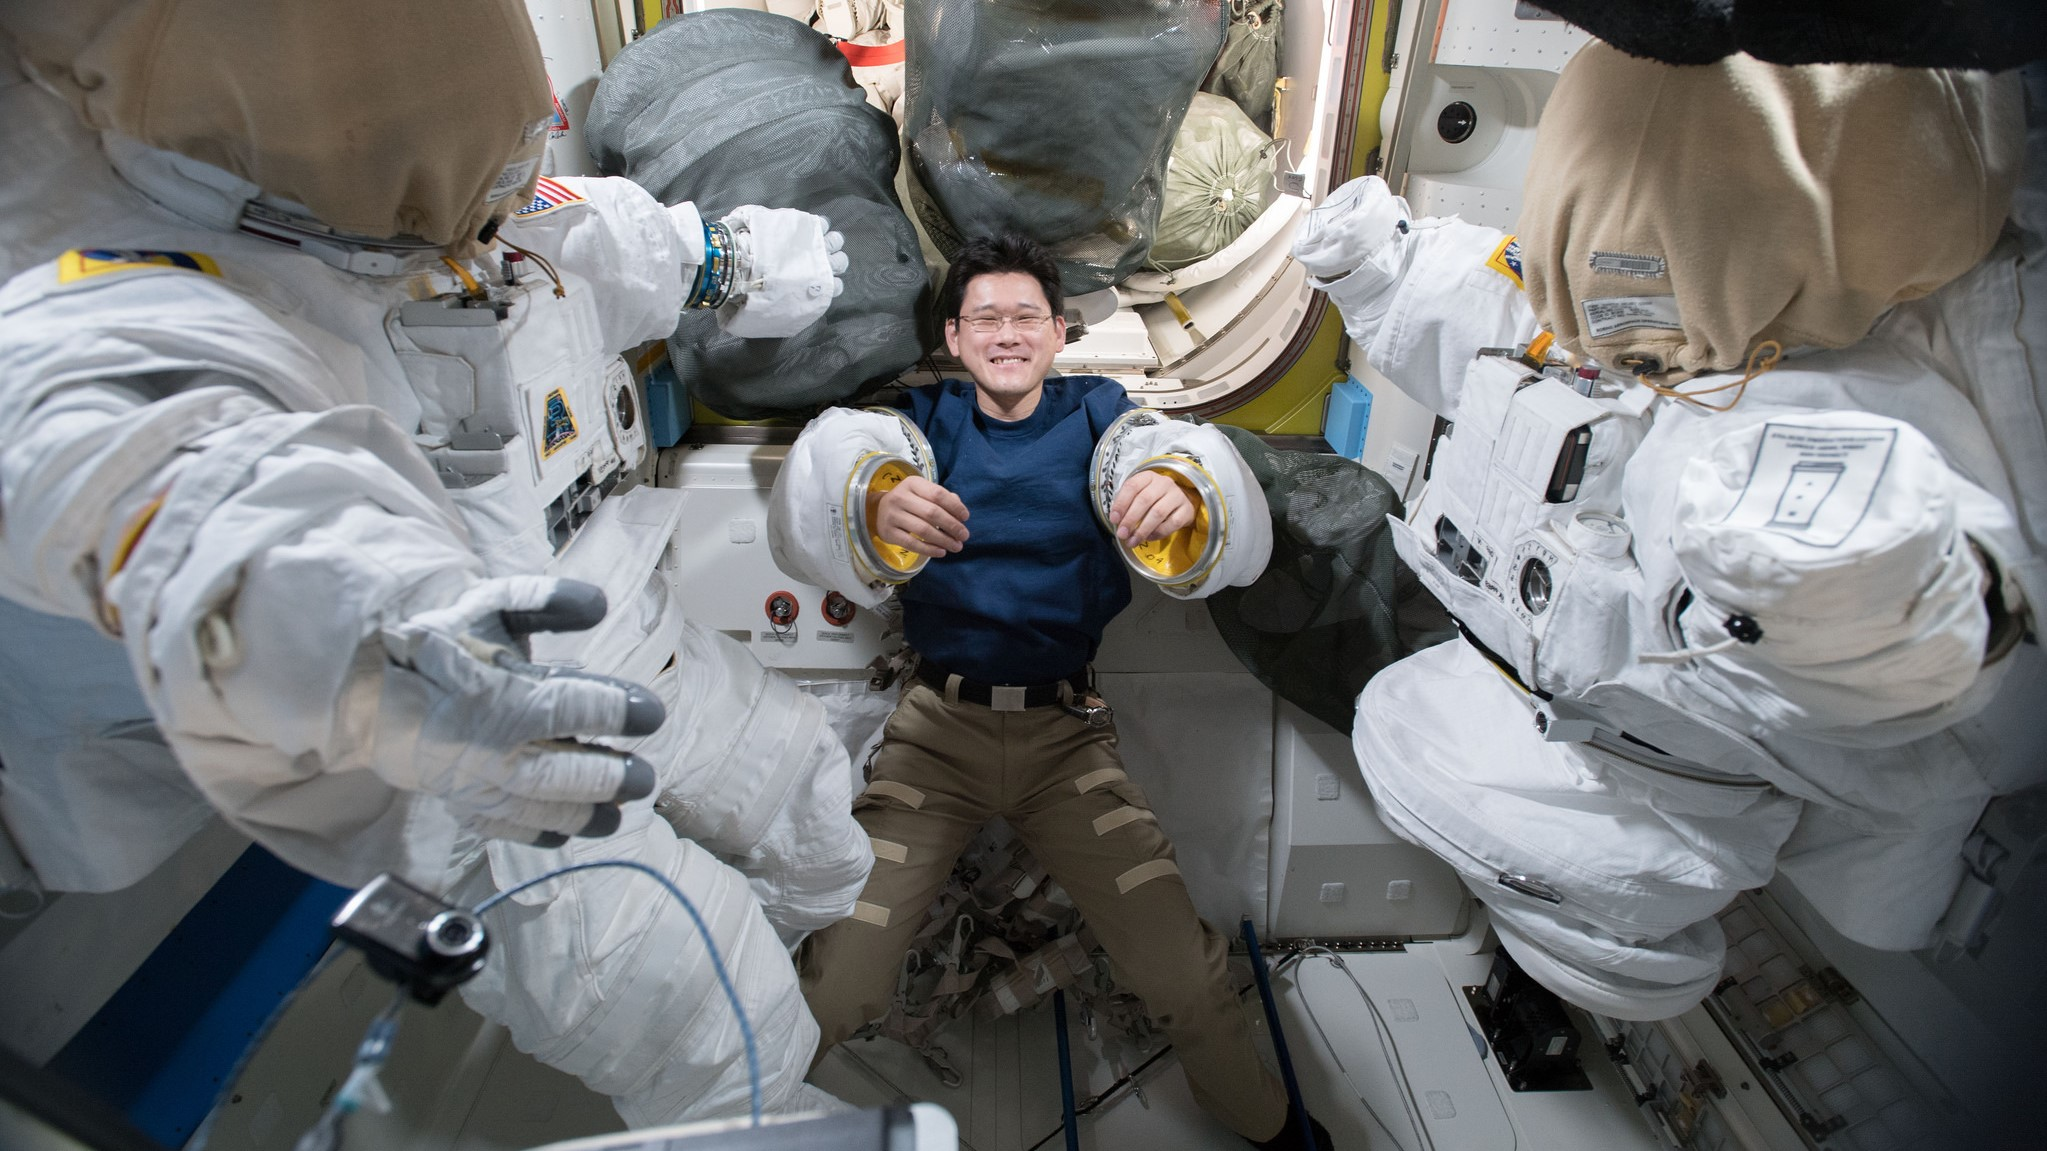 Japan Aerospace Exploration Agency astronaut Norishige Kanai tries on spacesuit sleeves inside the Quest airlock in preparation for the eventual U.S. EVA-48.Credit: NASA